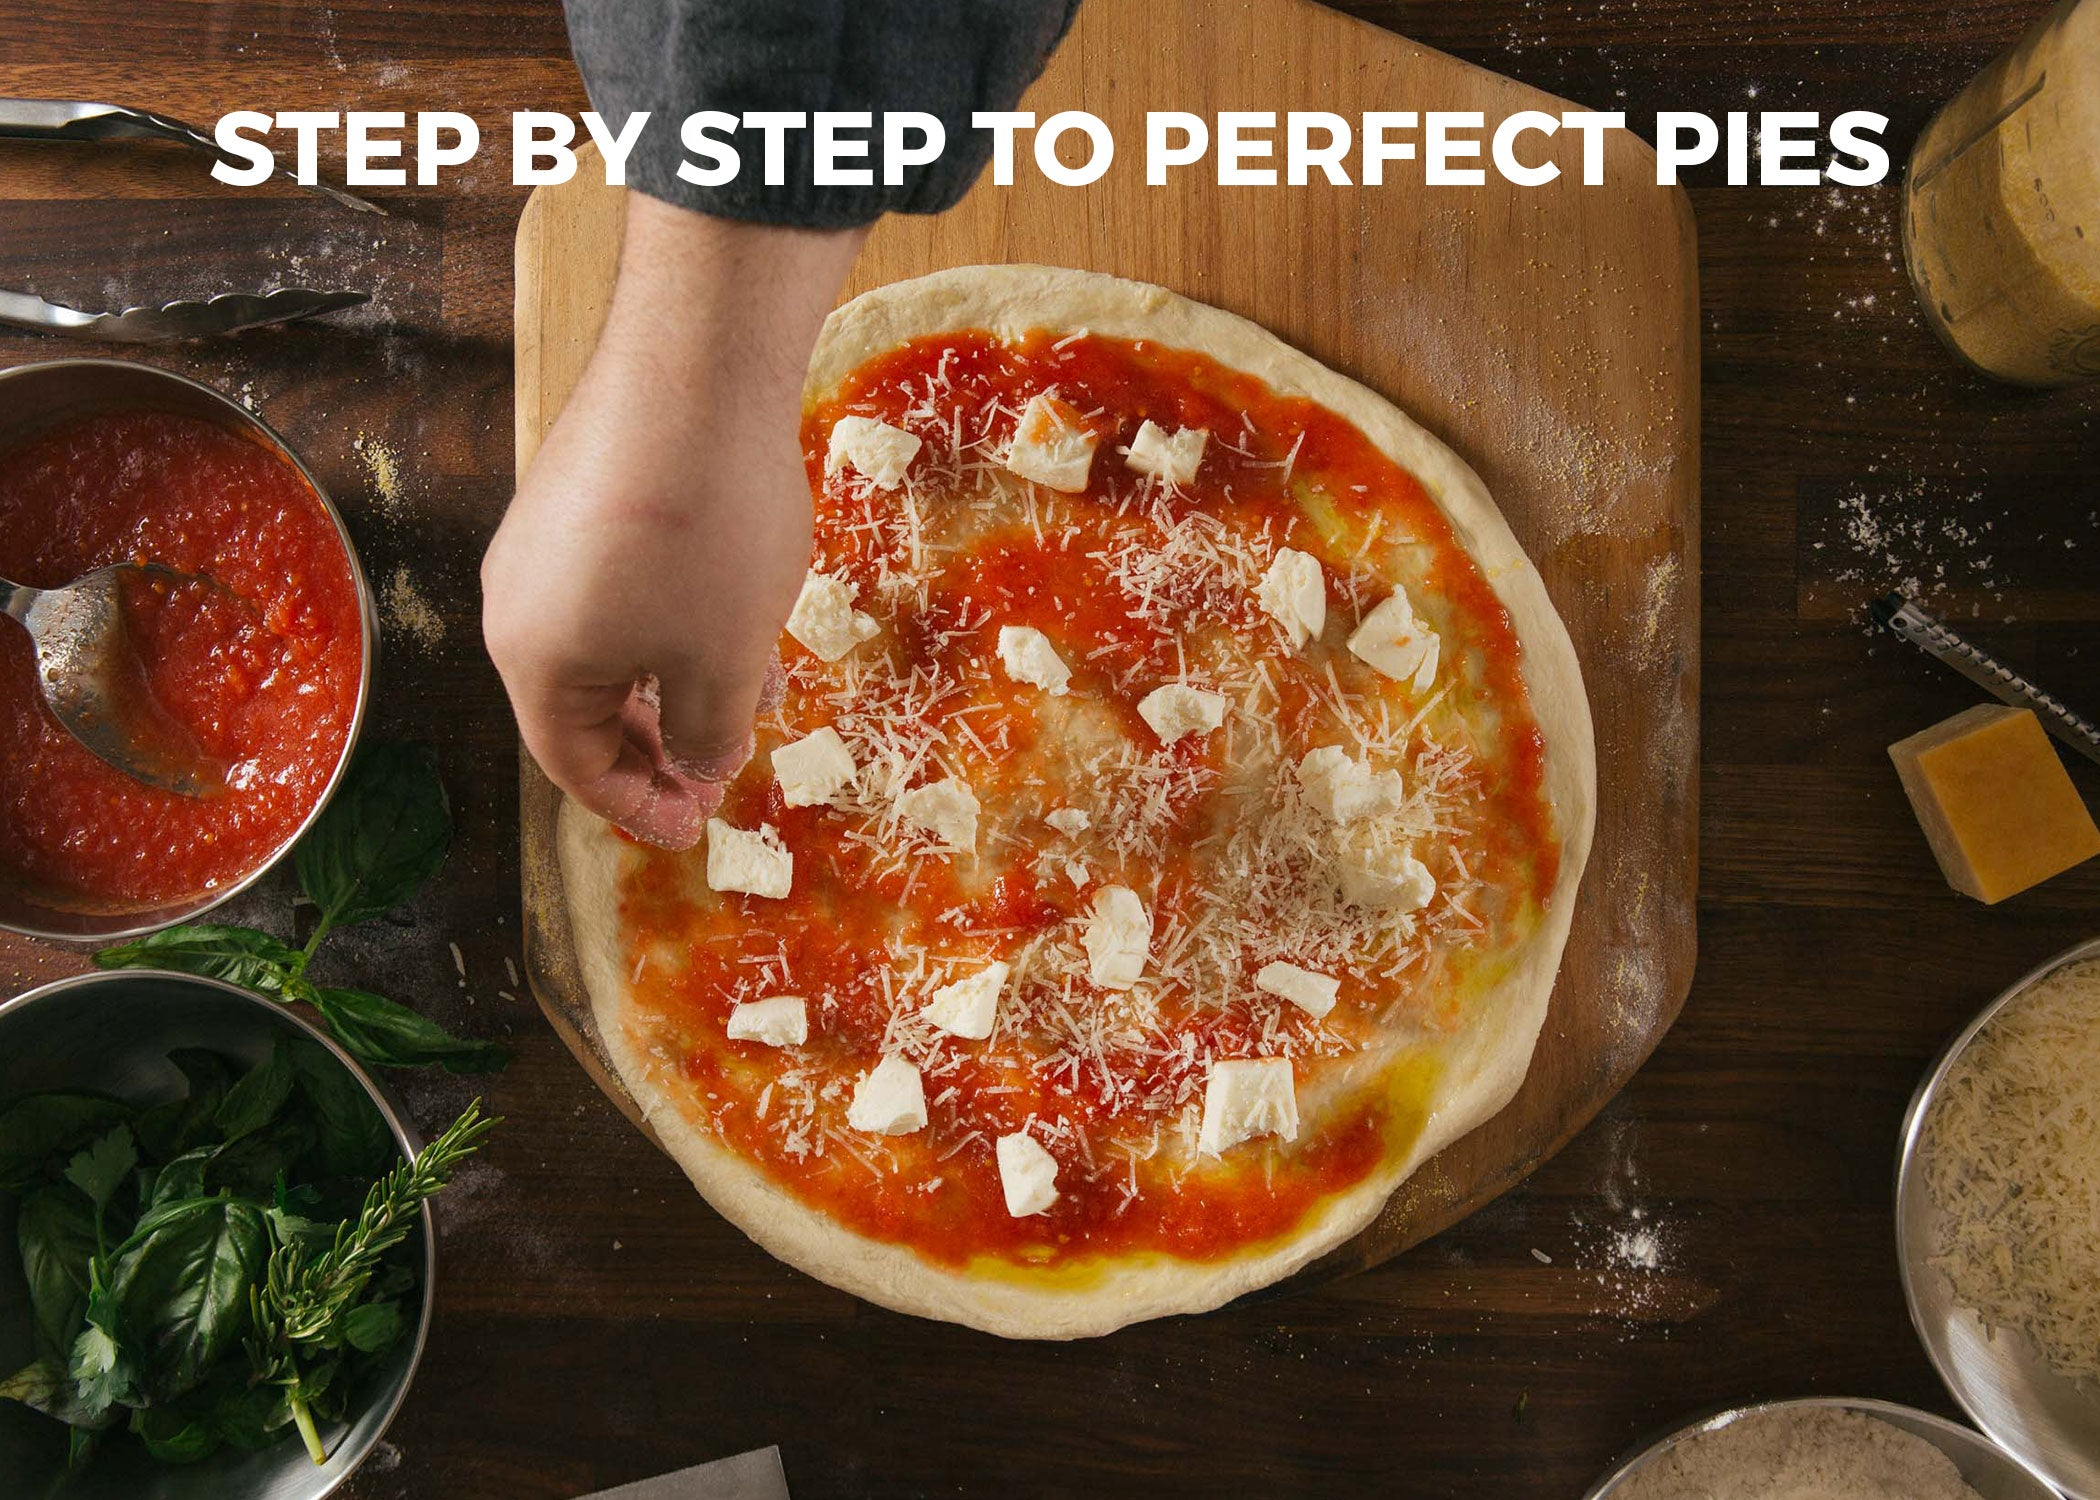 Step by step to perfect pies